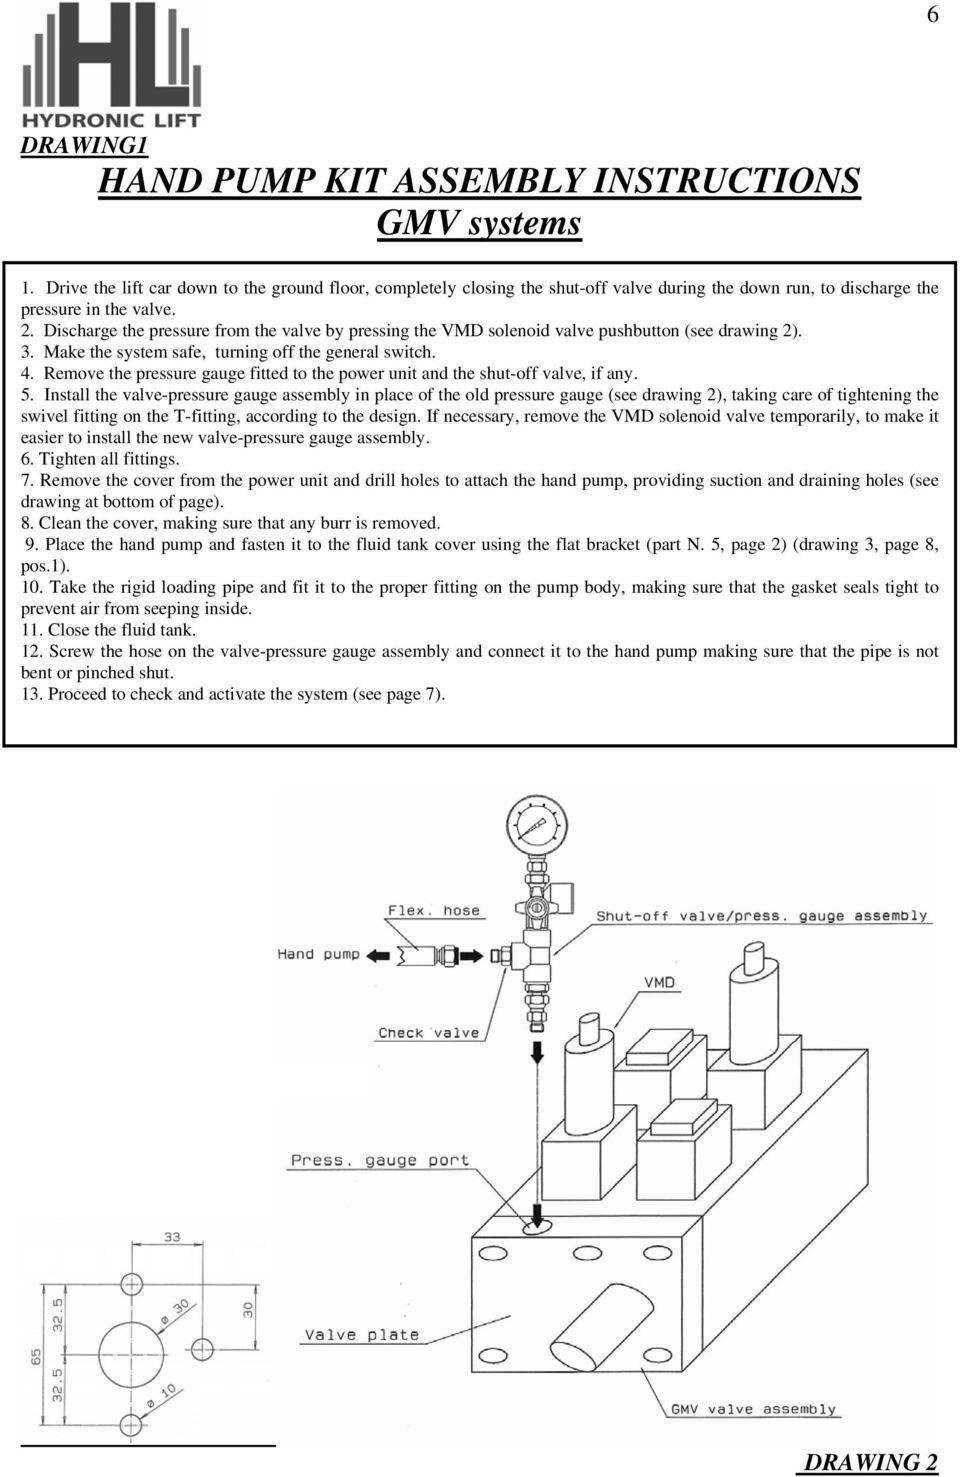 Discharge the pressure from the valve by pressing the VMD solenoid valve pushbutton (see drawing 2). 3. Make the system safe, turning off the general switch. 4.